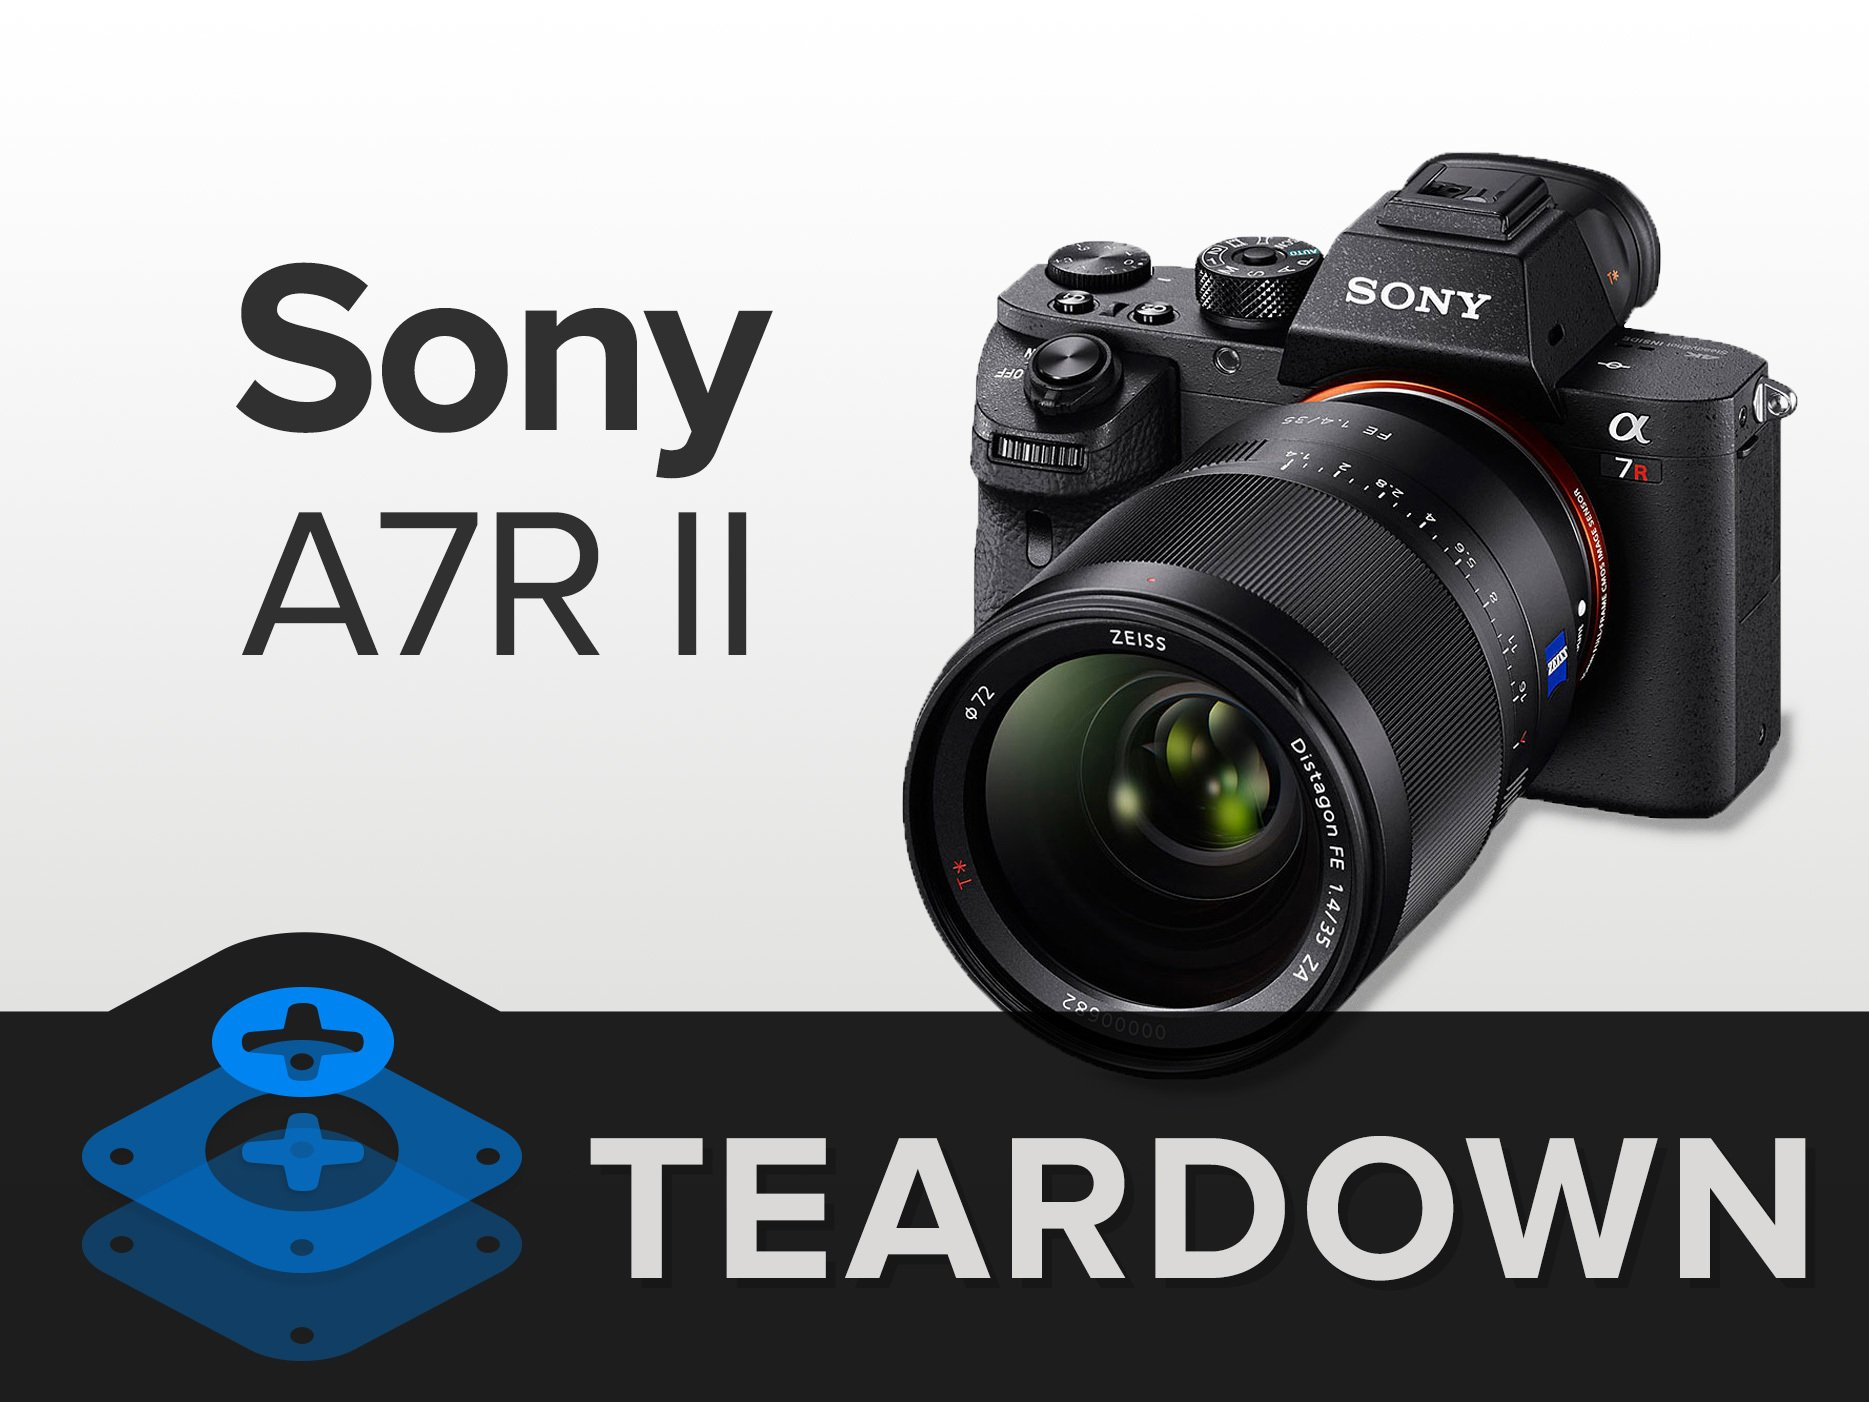 Sony a7R II Teardown - iFixit